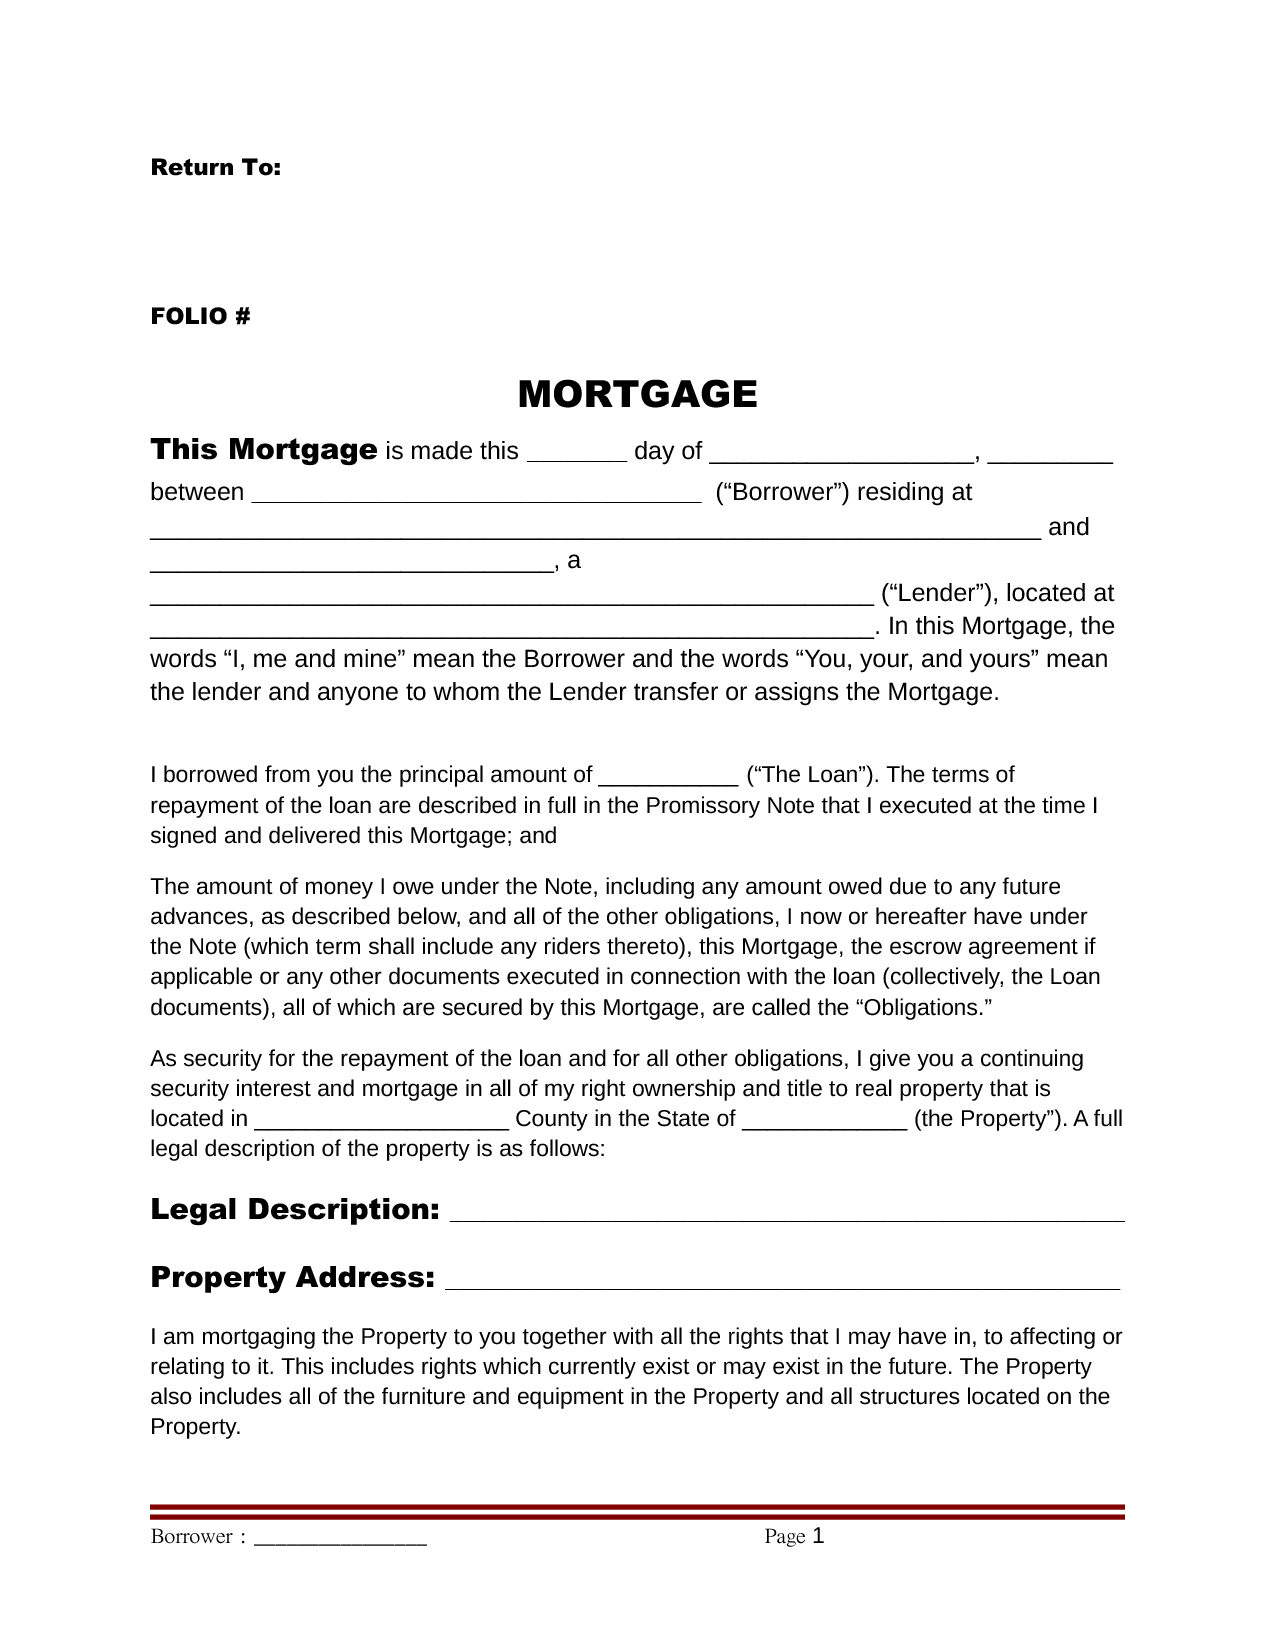 Mortgage deed 0 The borrowers, Real estate investing